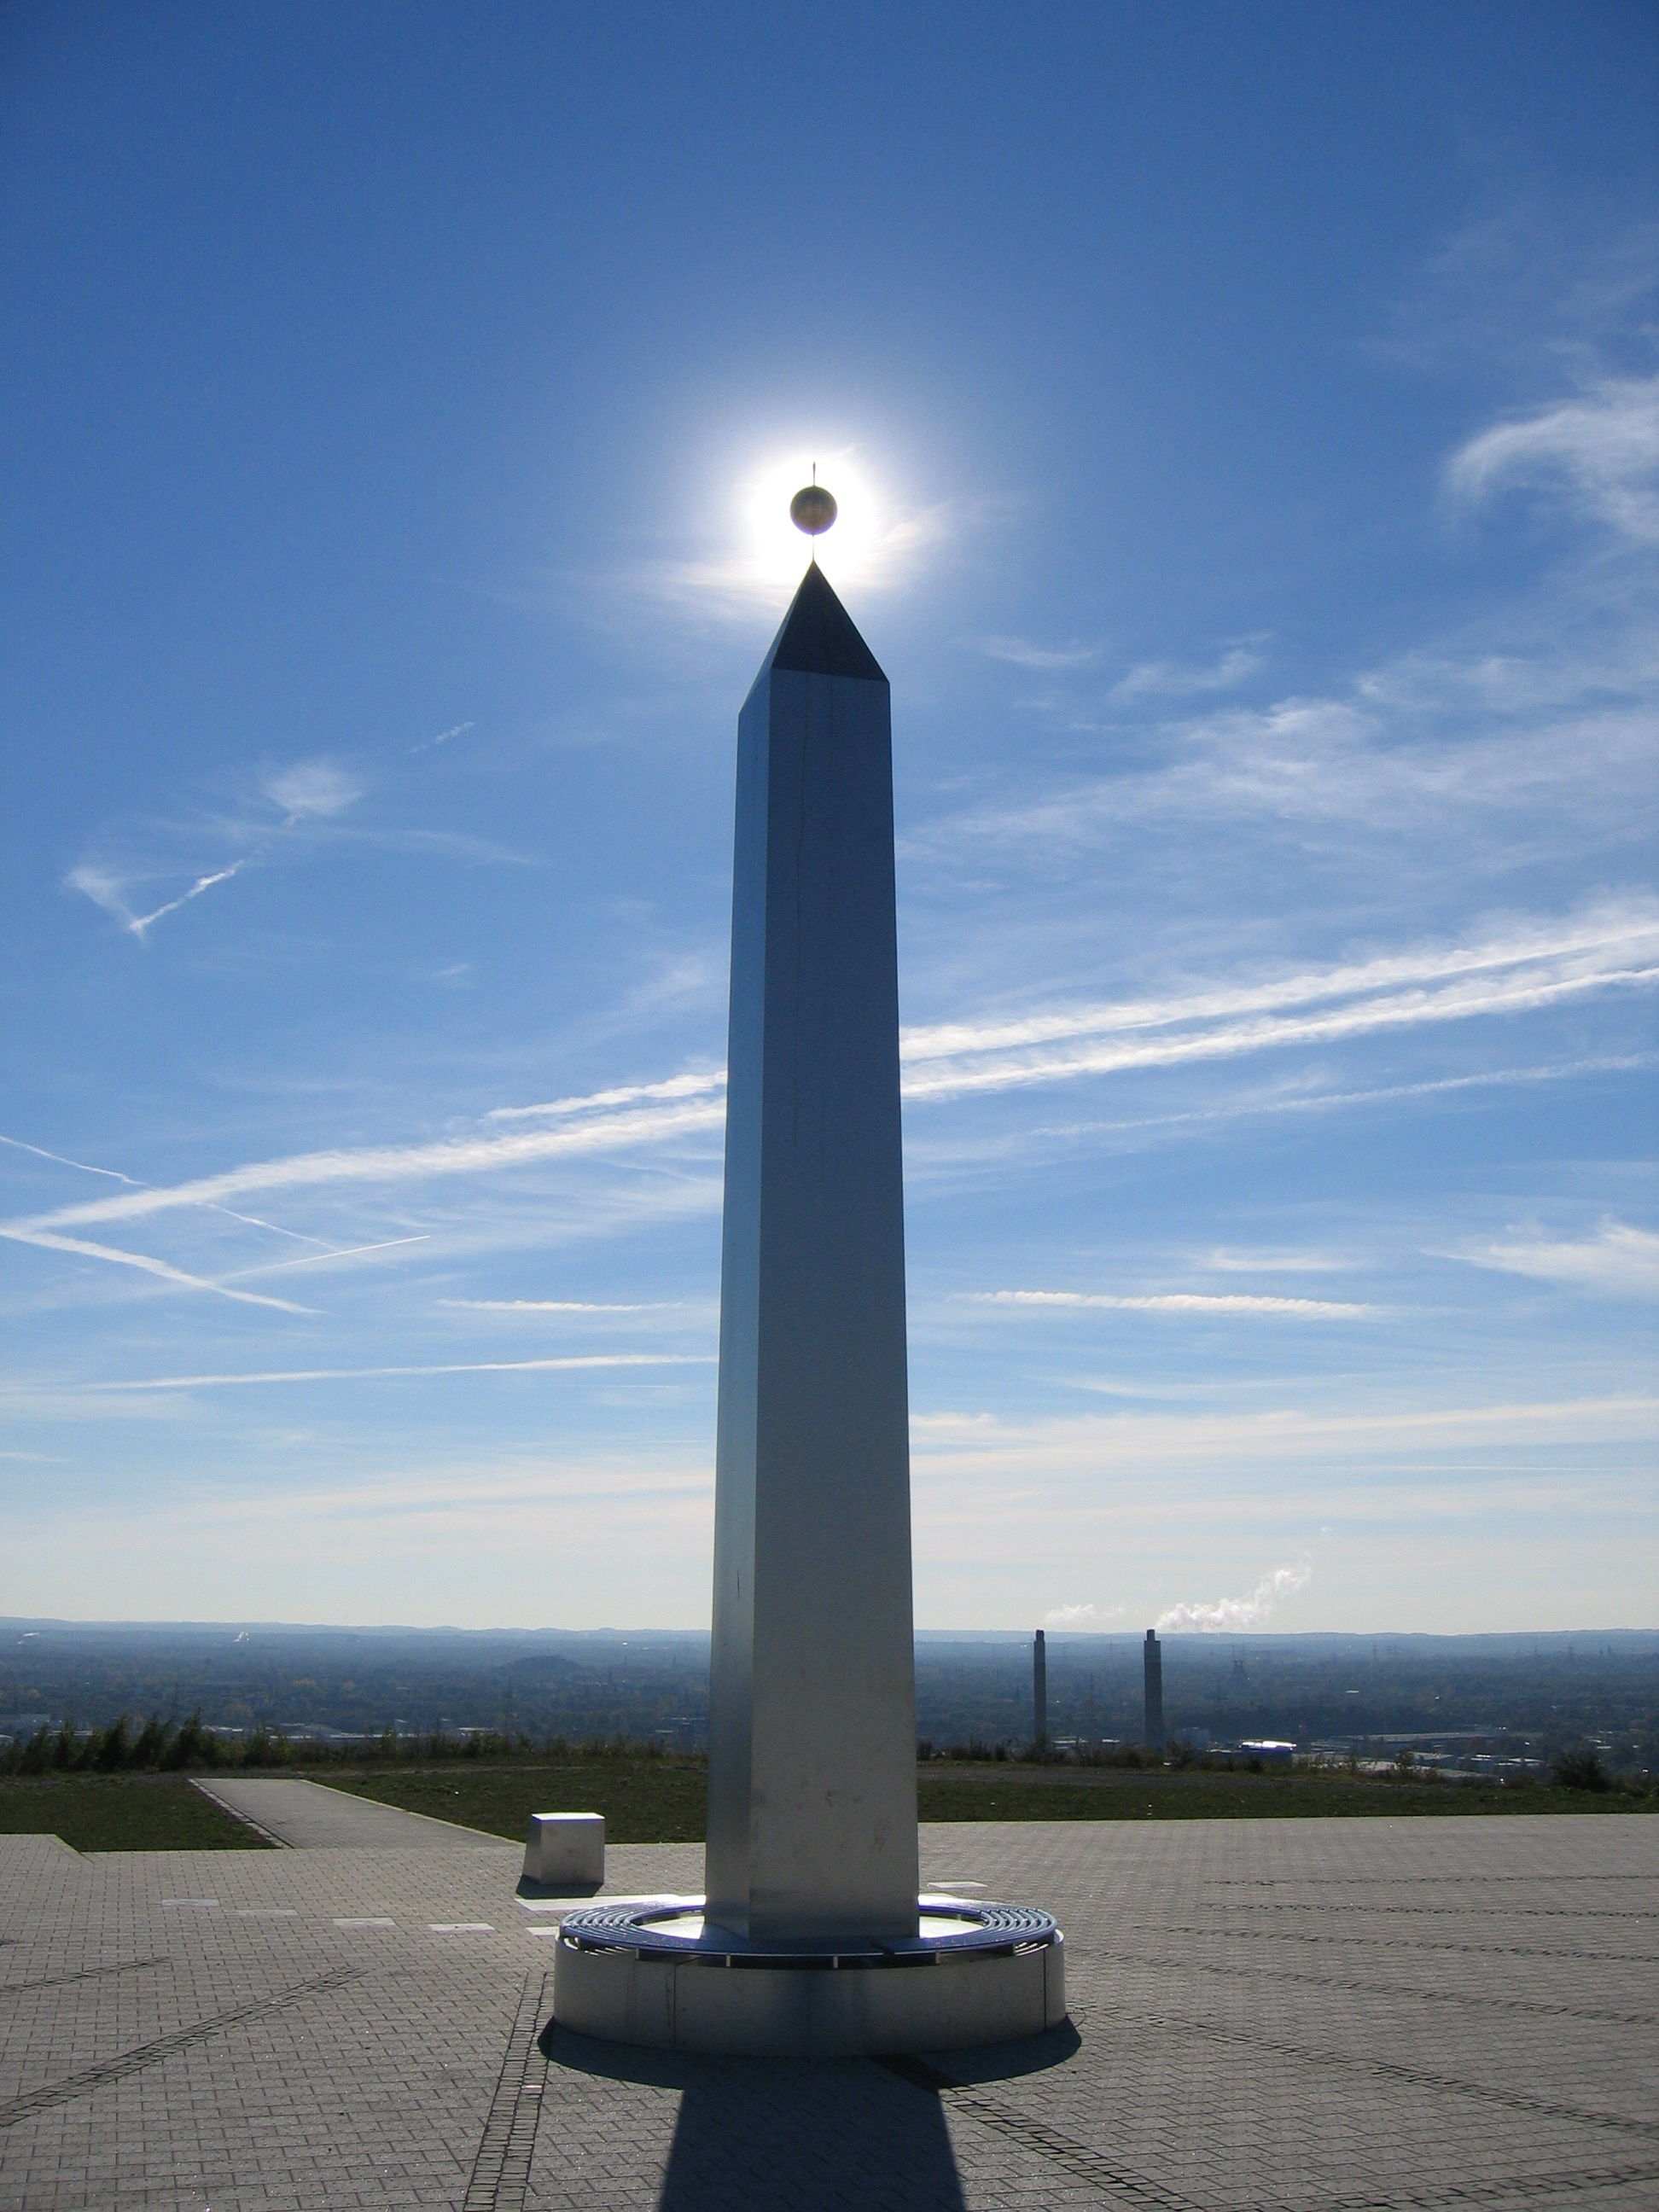 http://upload.wikimedia.org/wikipedia/commons/c/c8/Obelisk_hoheward.jpg